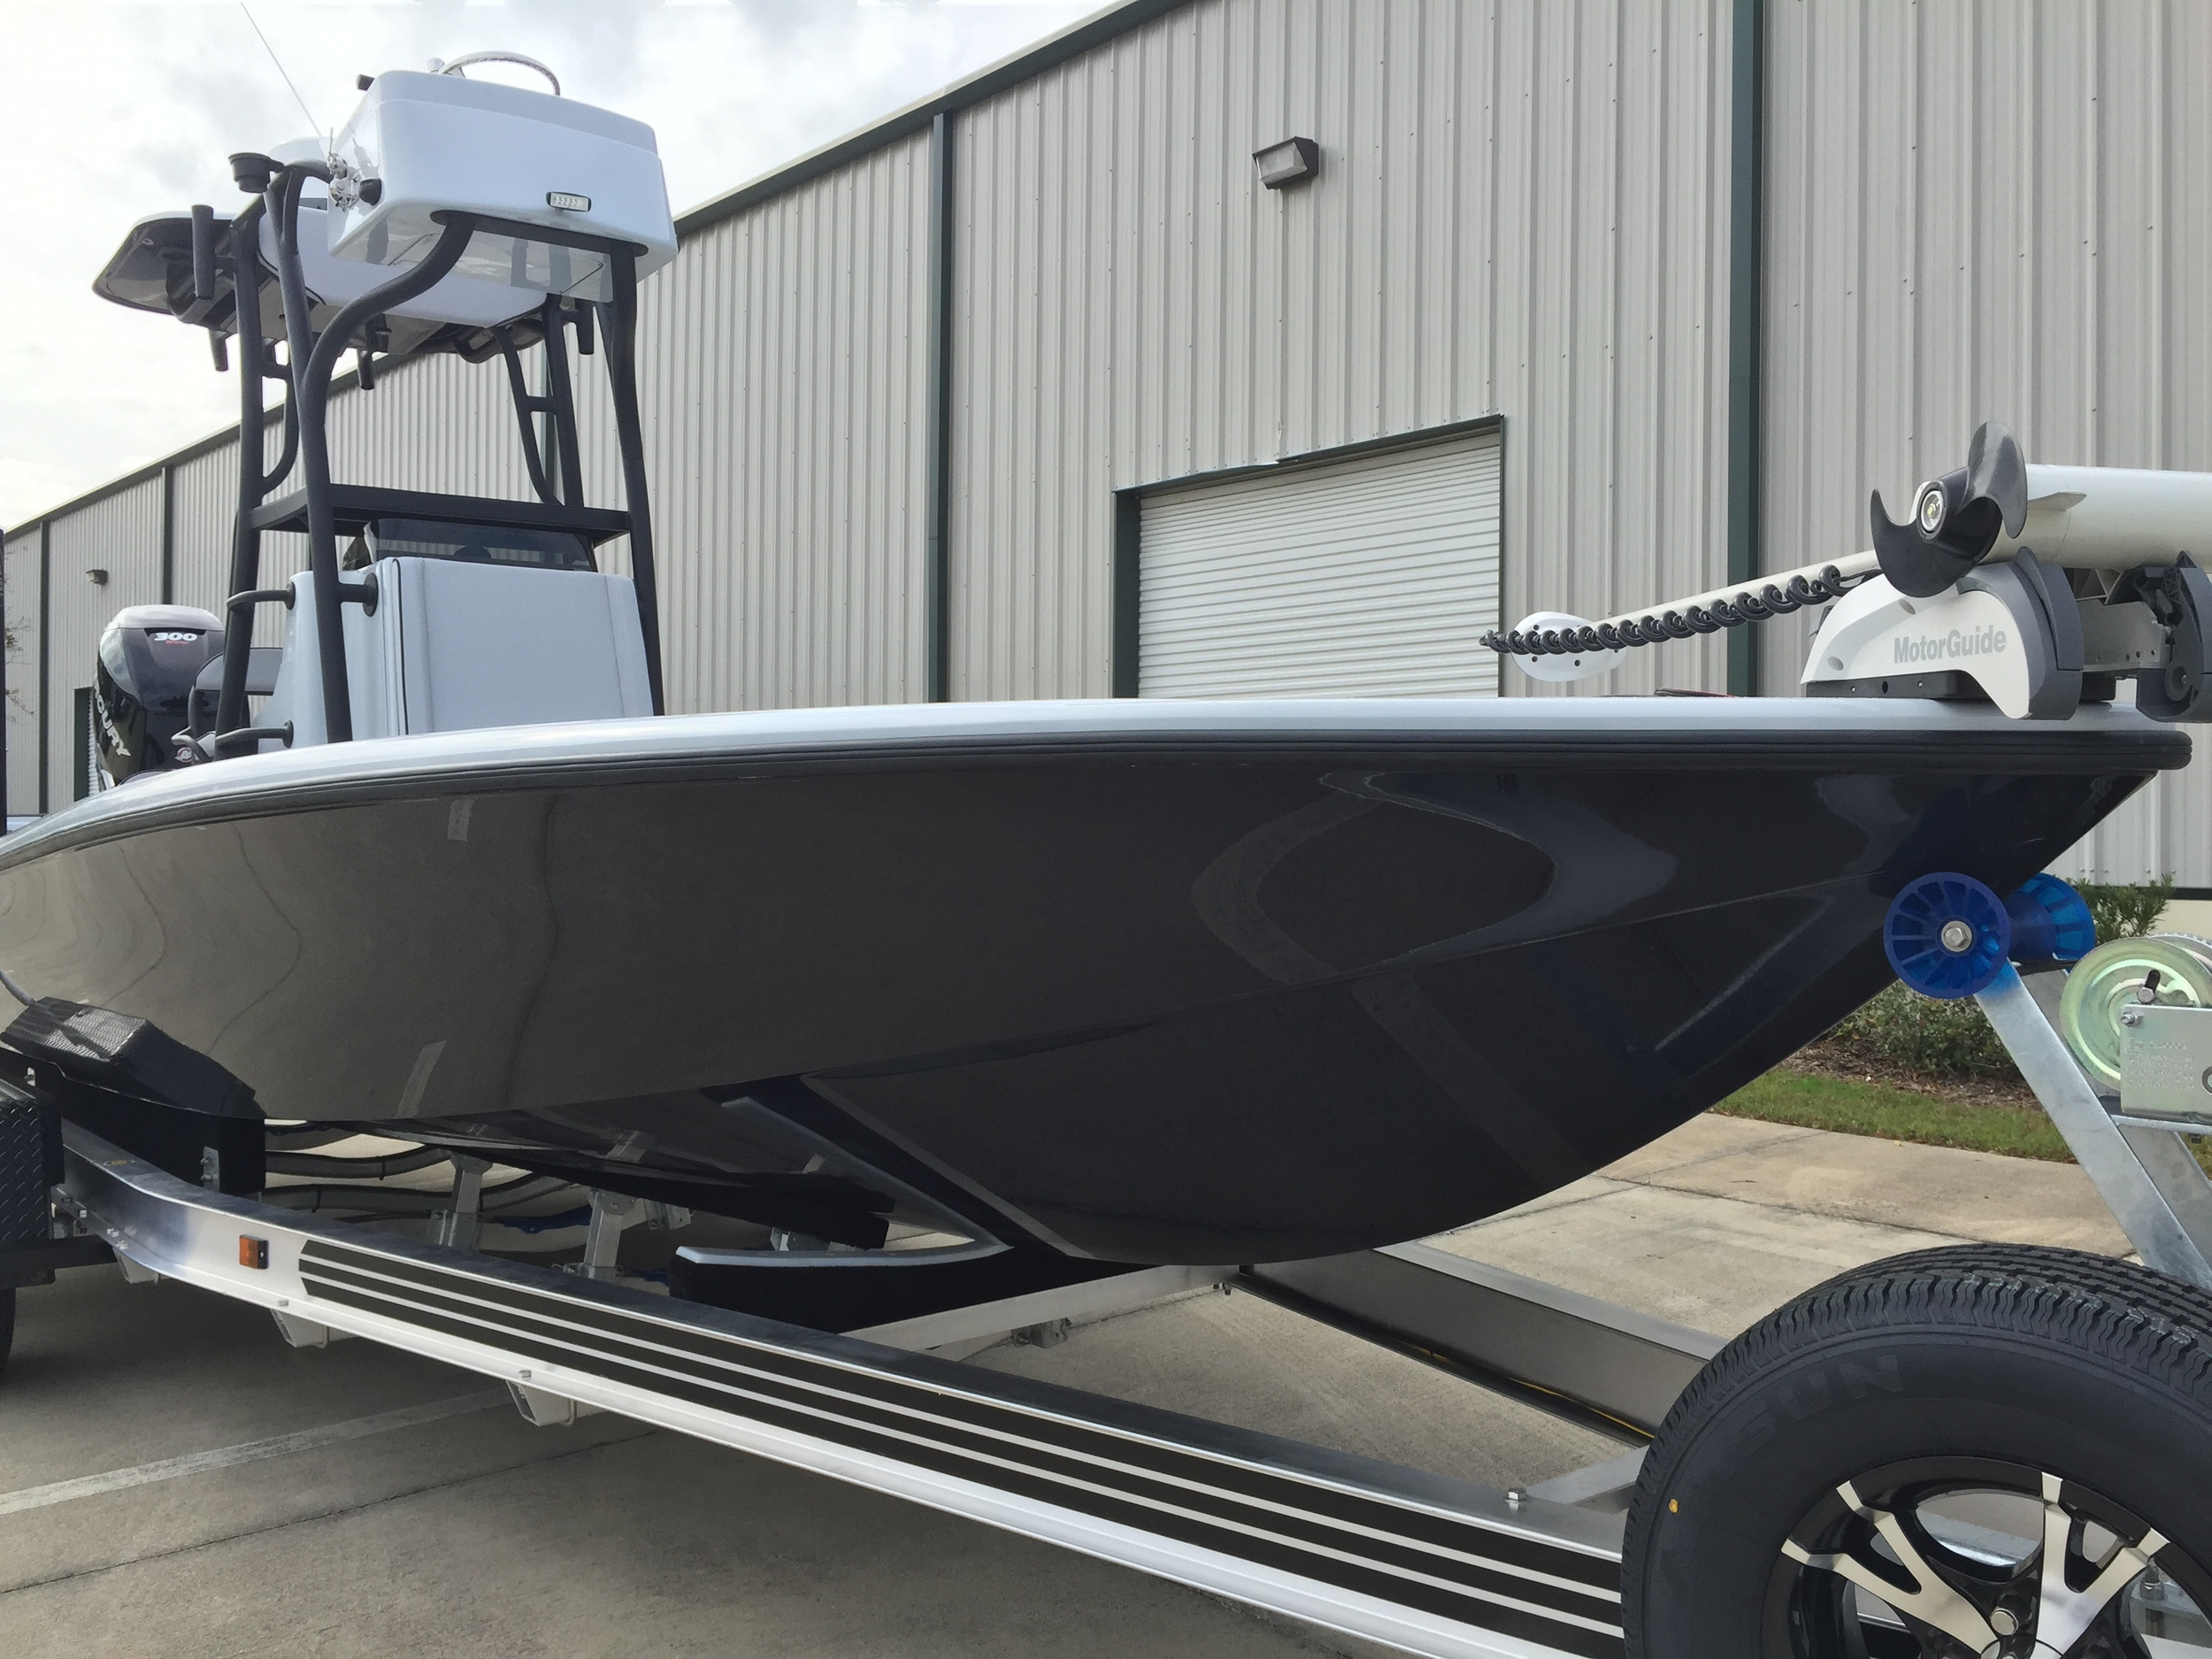 """My Yellowfin 24 Bay Boat. This is """"The Best One Yet!"""""""